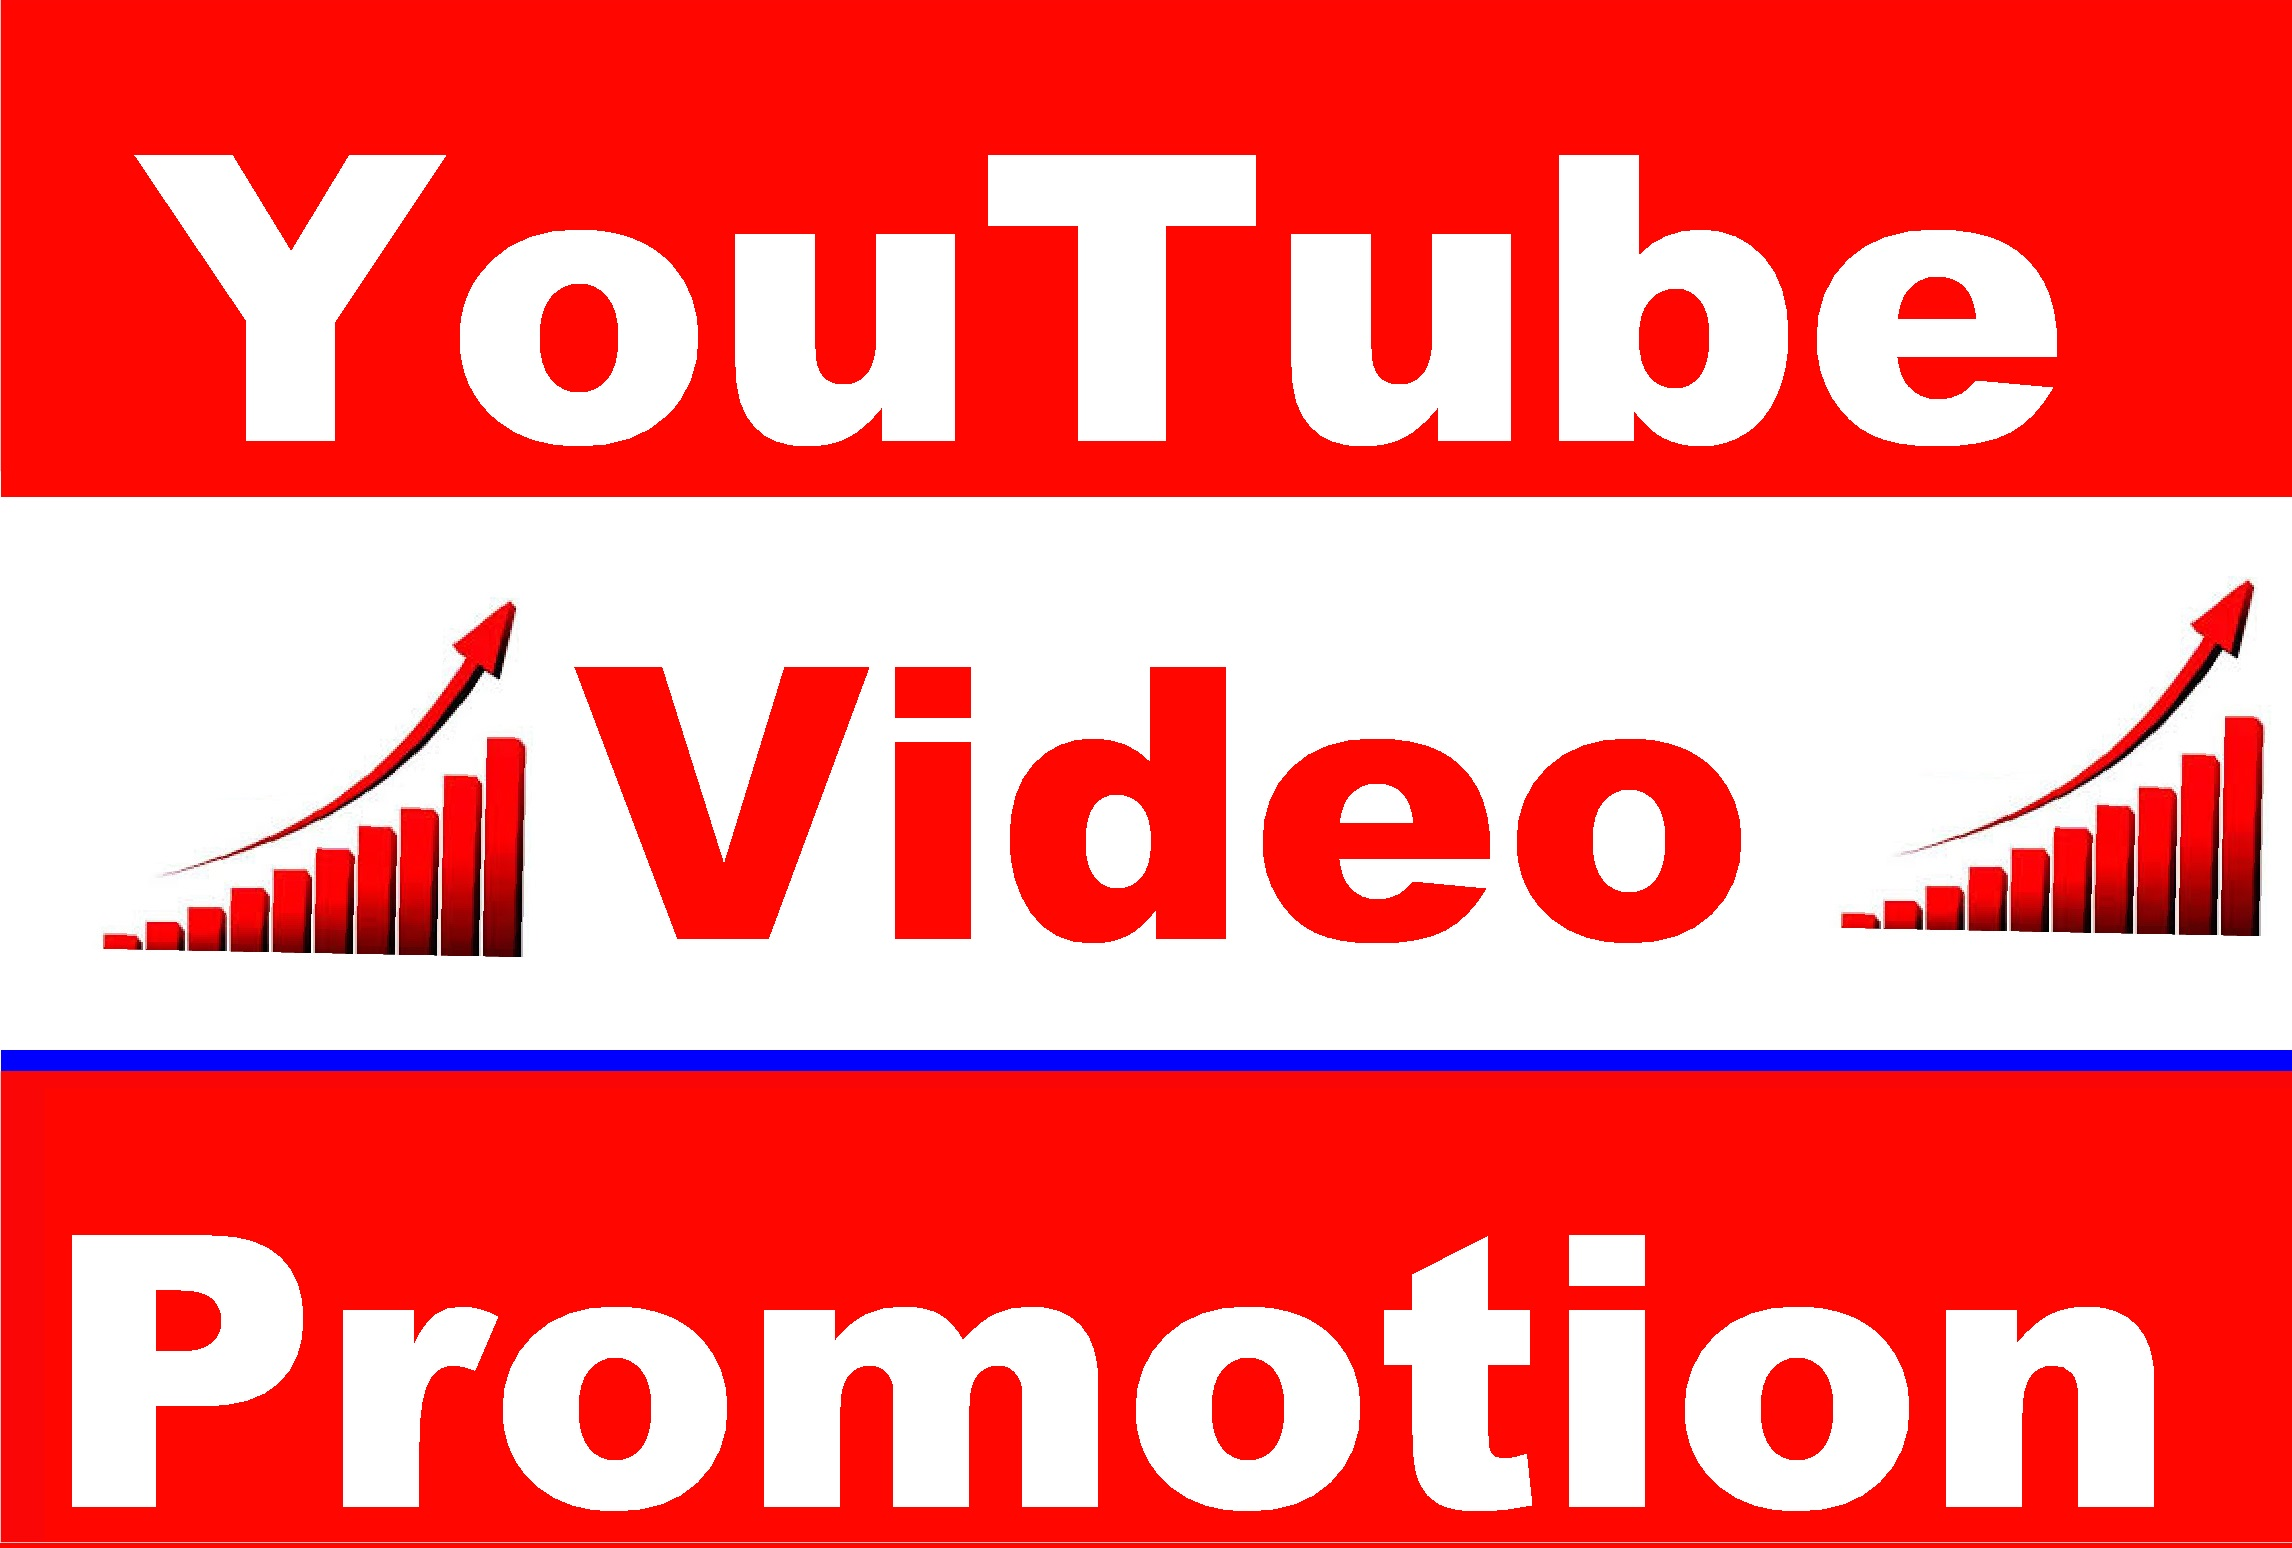 YouTube Video Promotion High Quality Real Active Audience